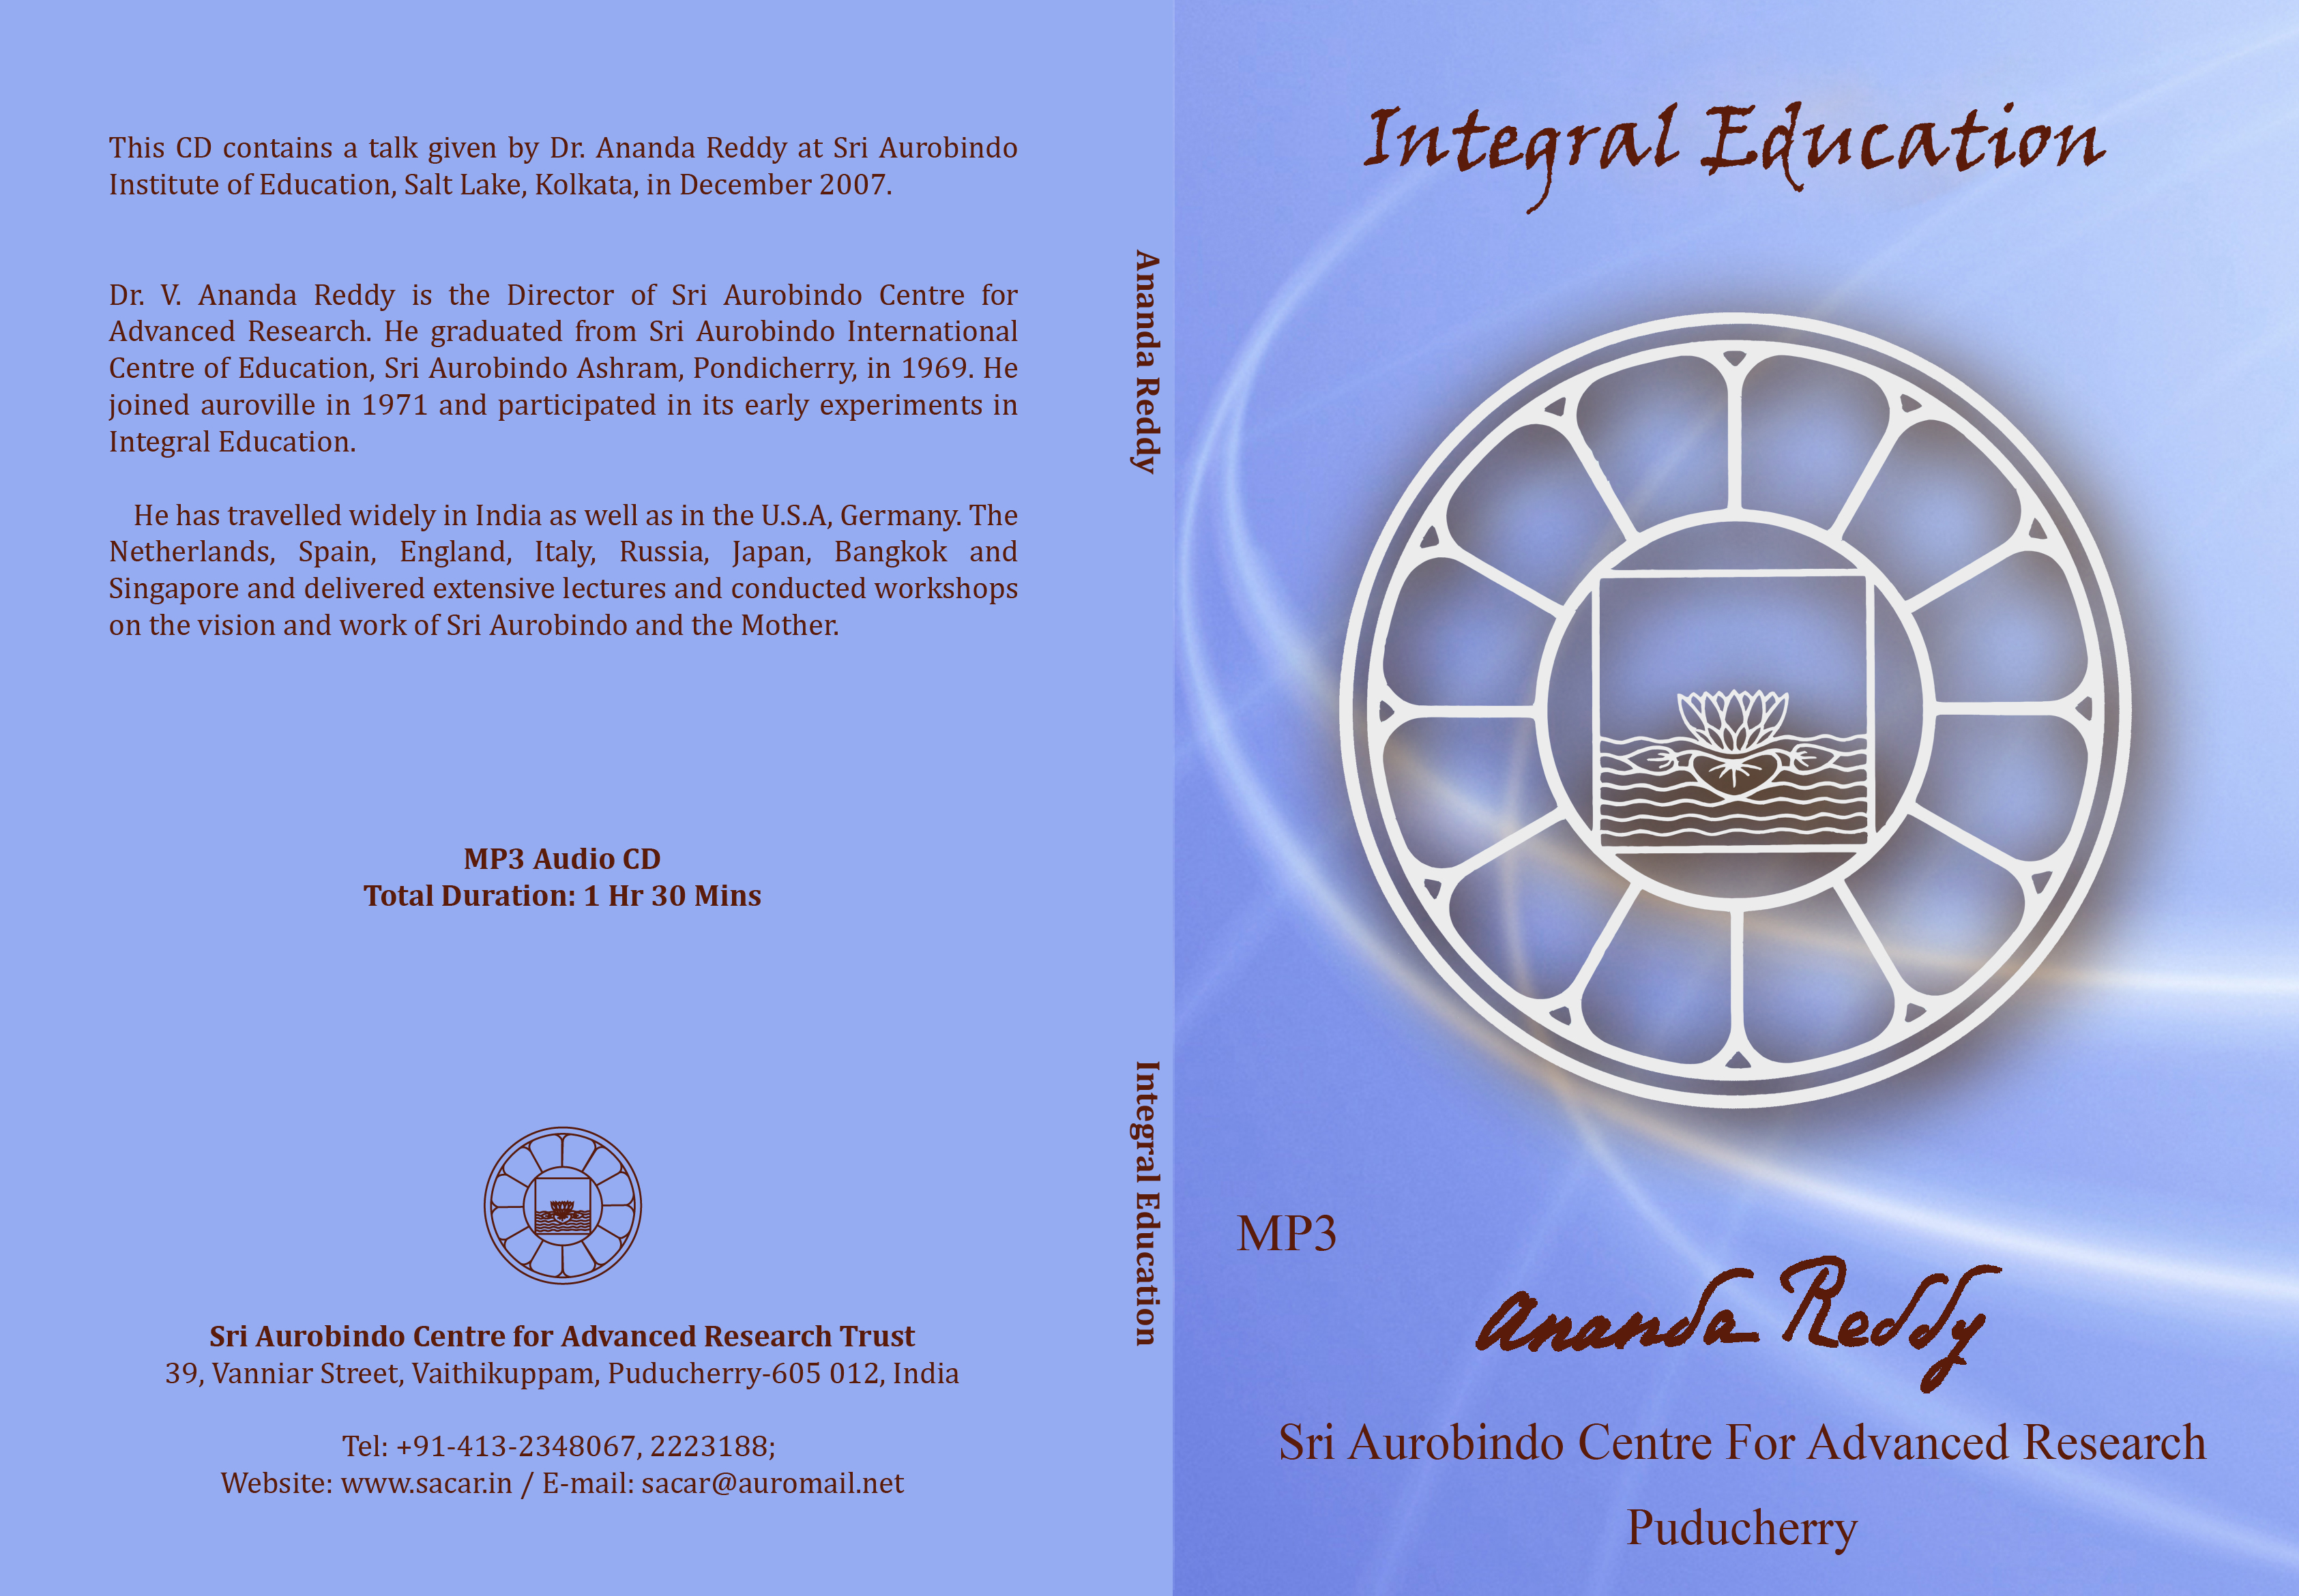 Integral Education